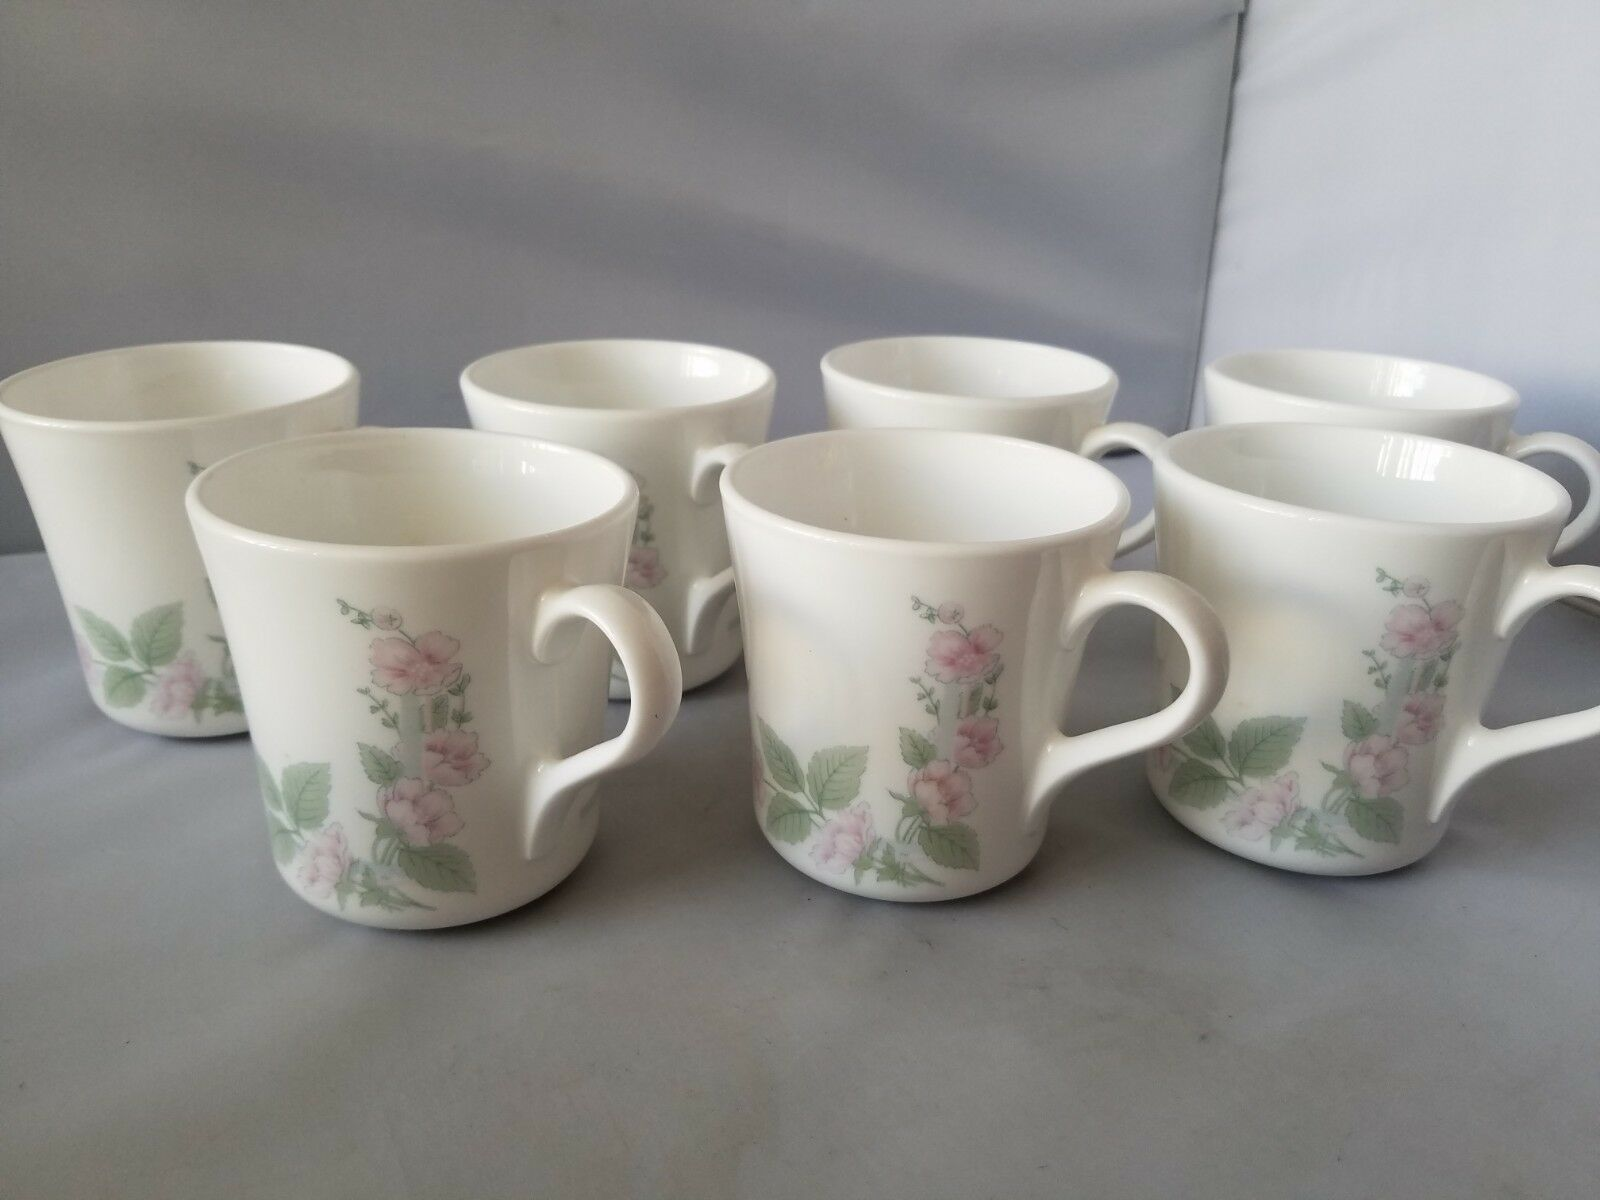 Corelle Corning Veranda Coffee Cups Mugs Set of 7 White Floral Home Kitchen